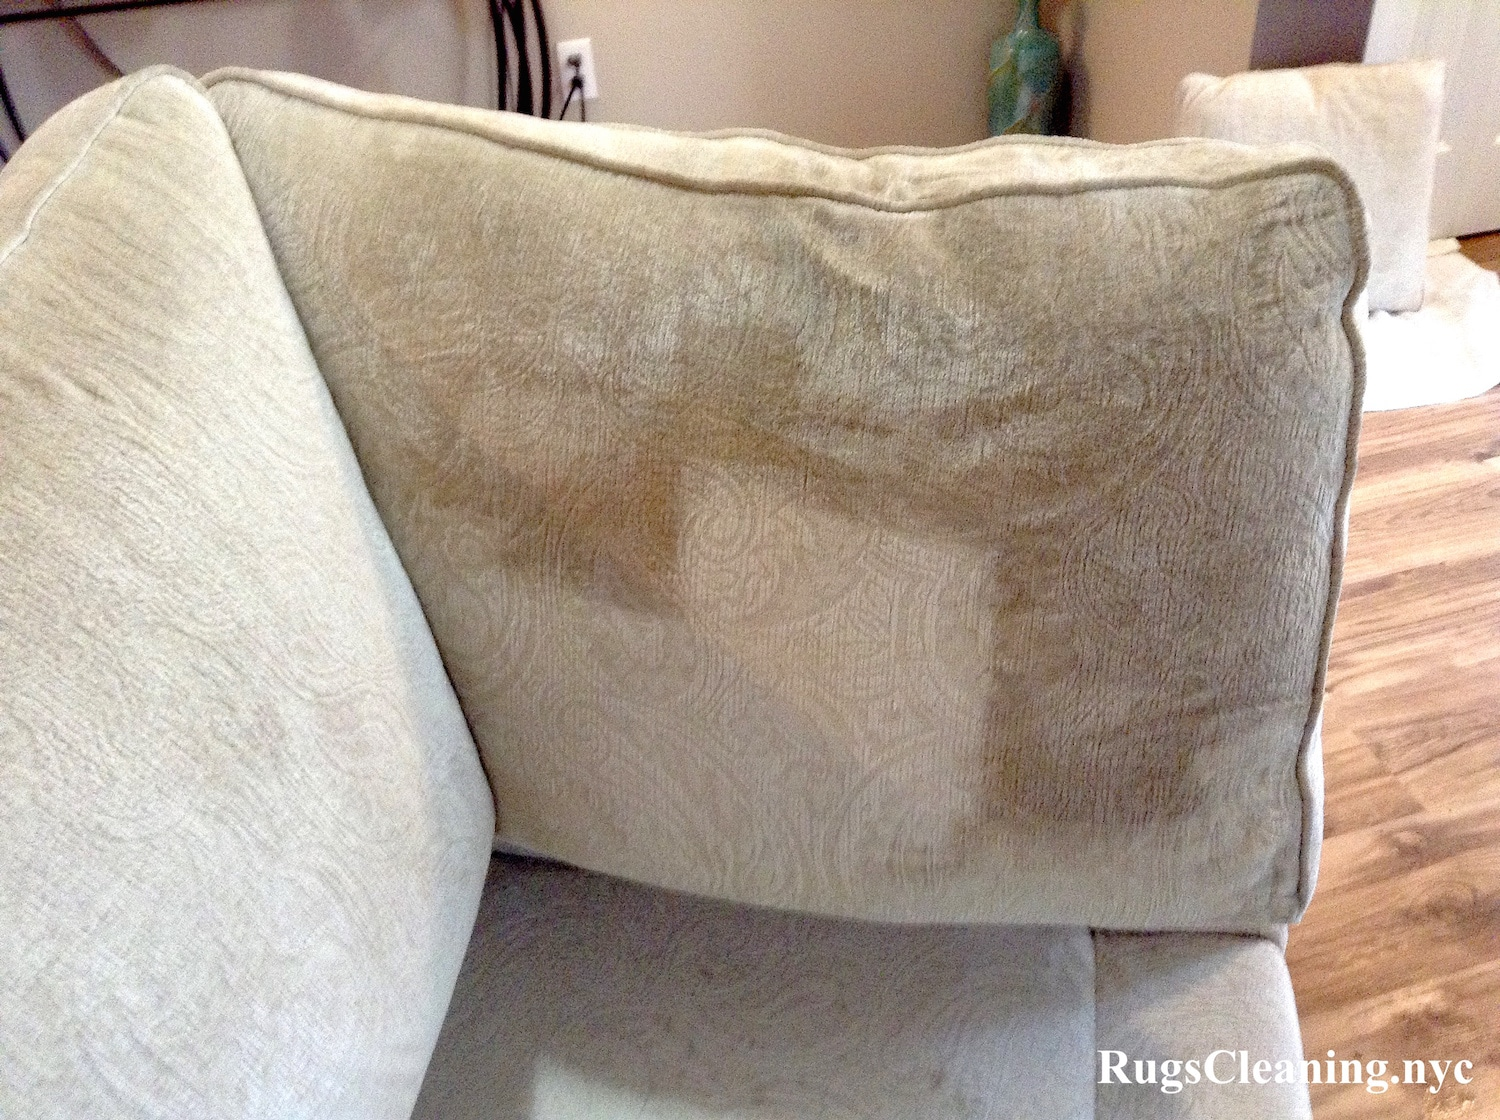 Upholstery Cleaning Nyc Service